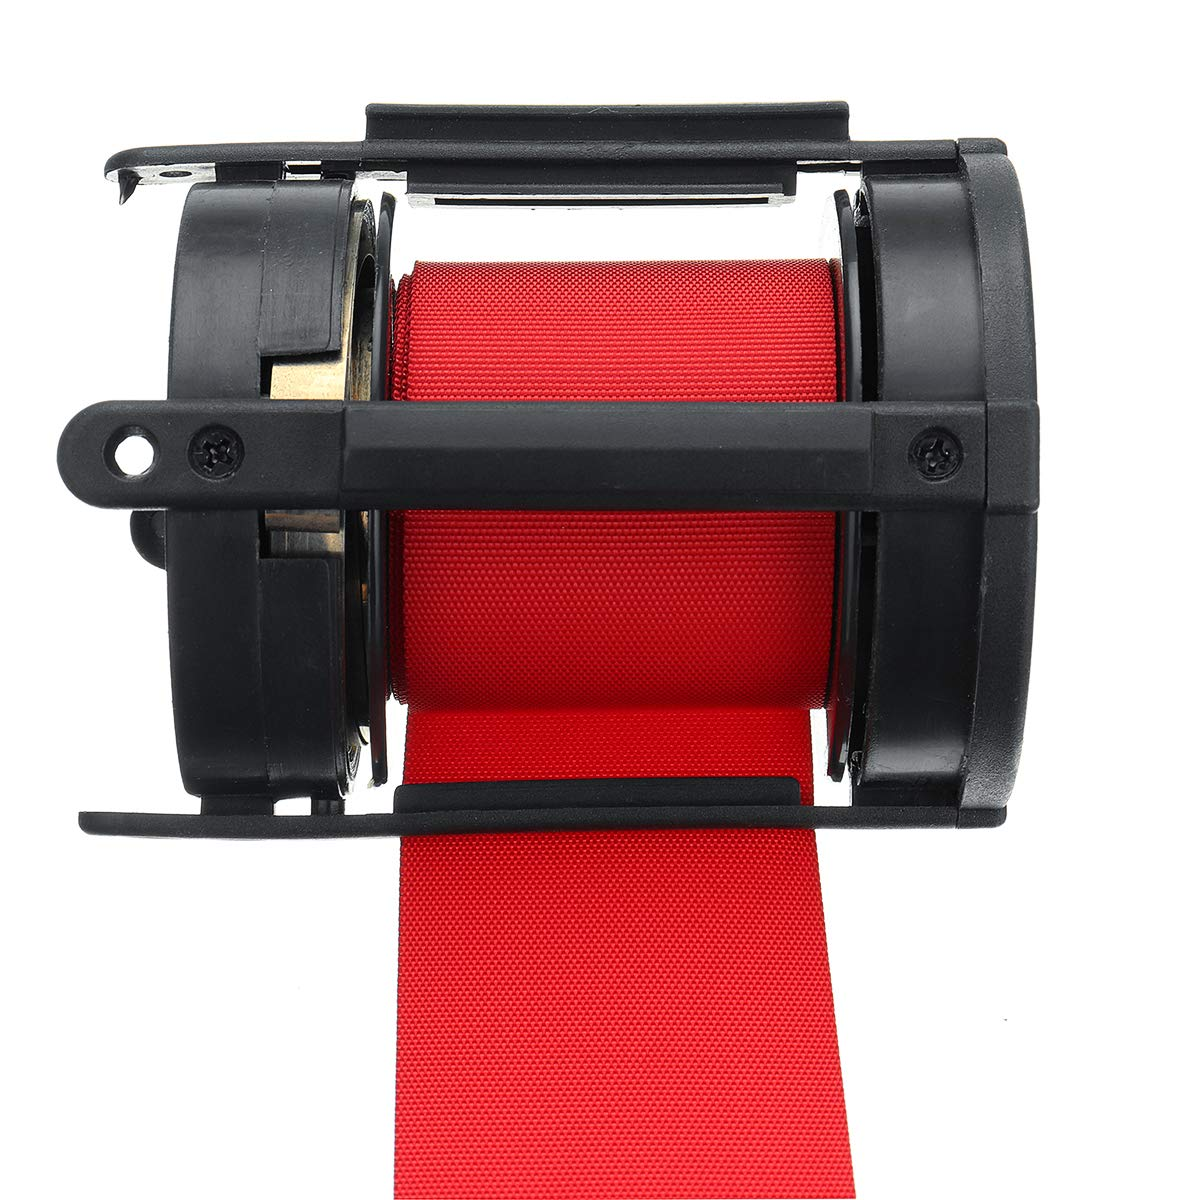 2M TuToy 2//3//5M R/étractable Stanchion Belt Crowd Queue Control Barrier Mounted Accessory Red